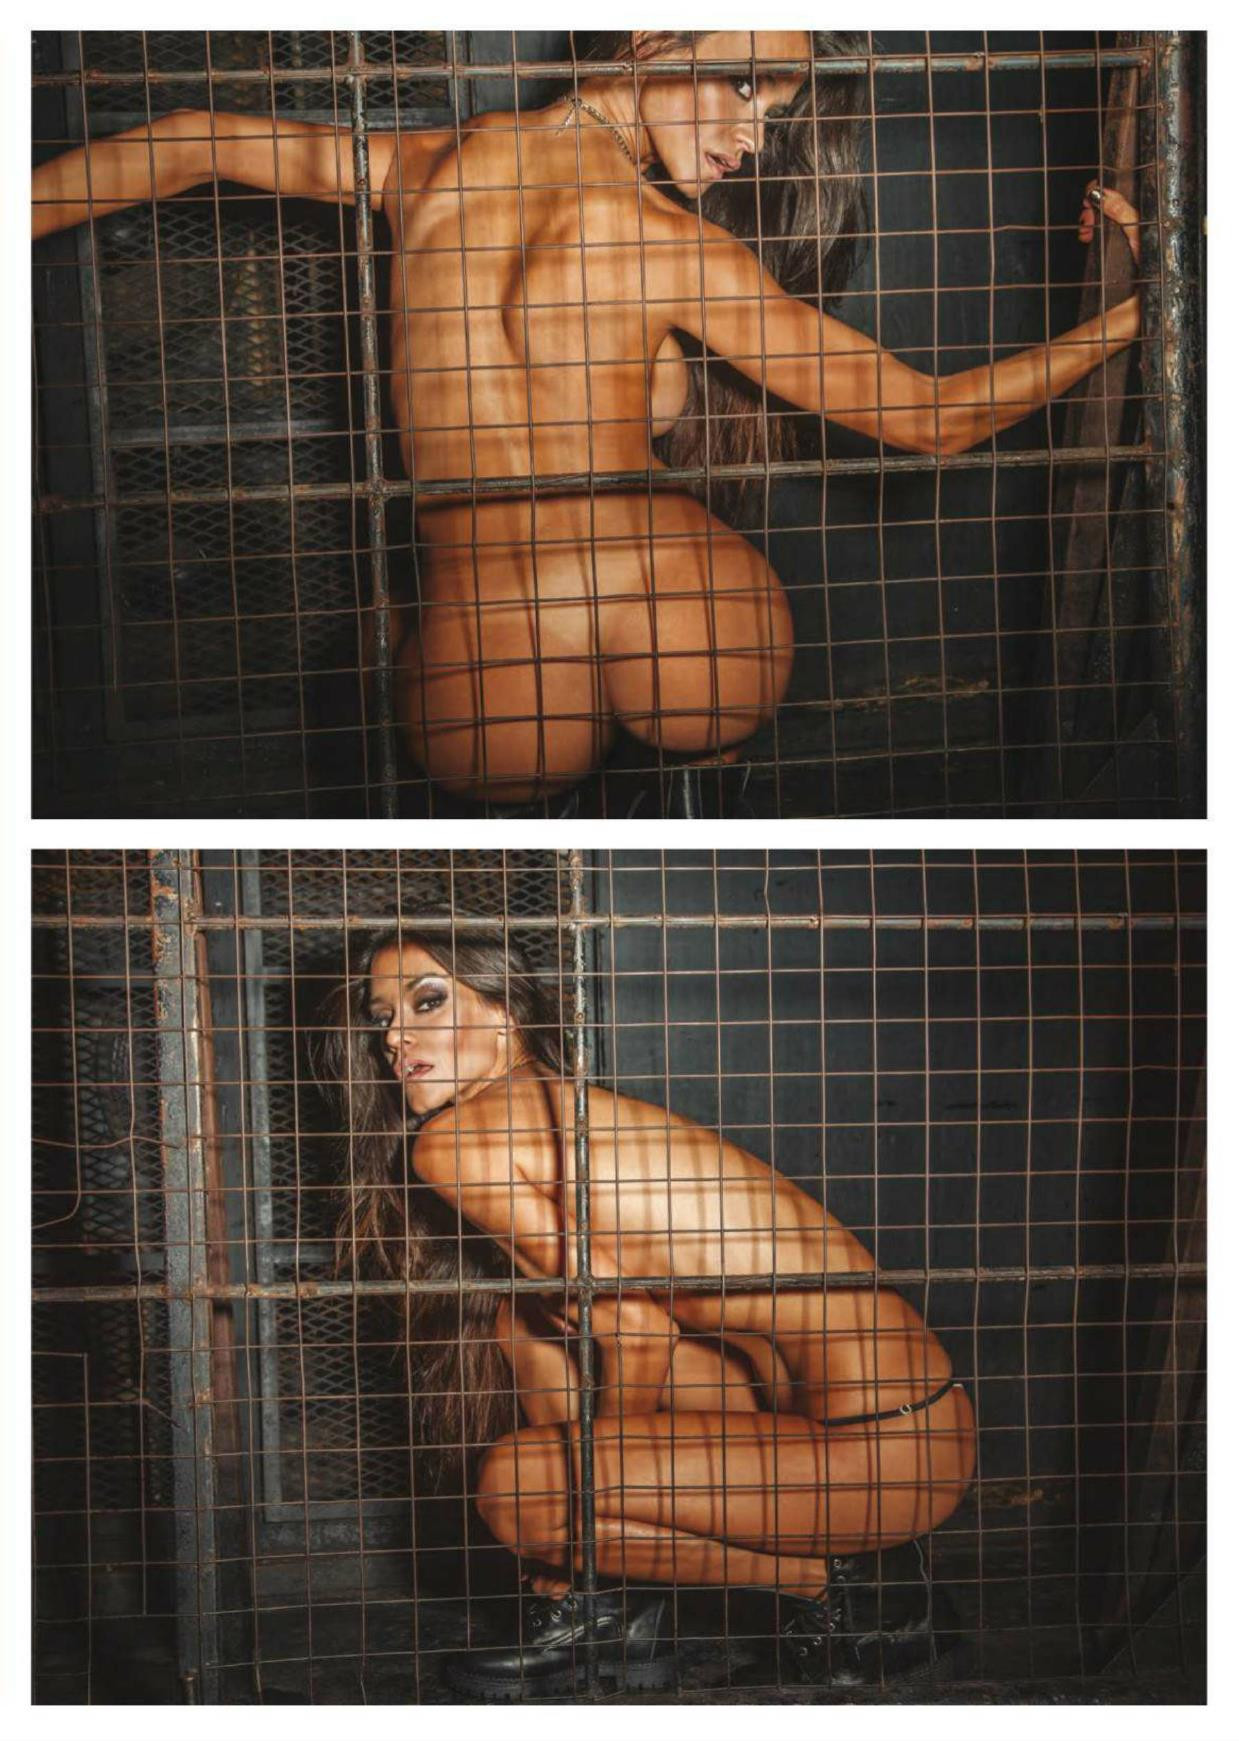 Evangelina-Carrozzo-Nude-1---TheFappening.nu195f88d02a945ac0.jpg